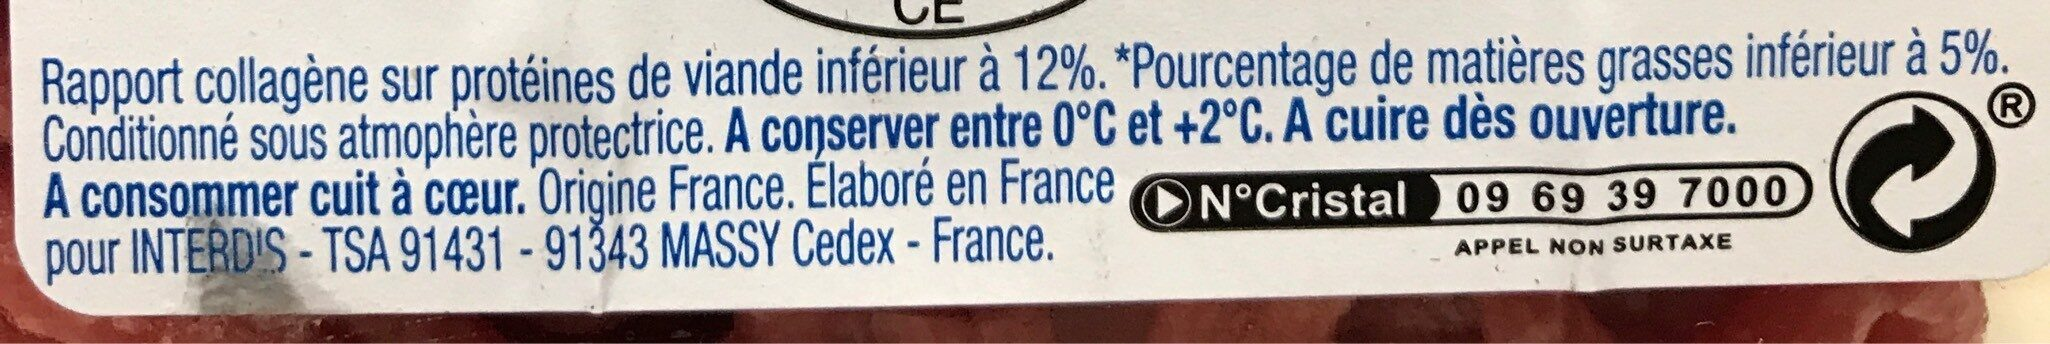 Viande hachee pur boeuf 5% MG - Informations nutritionnelles - fr